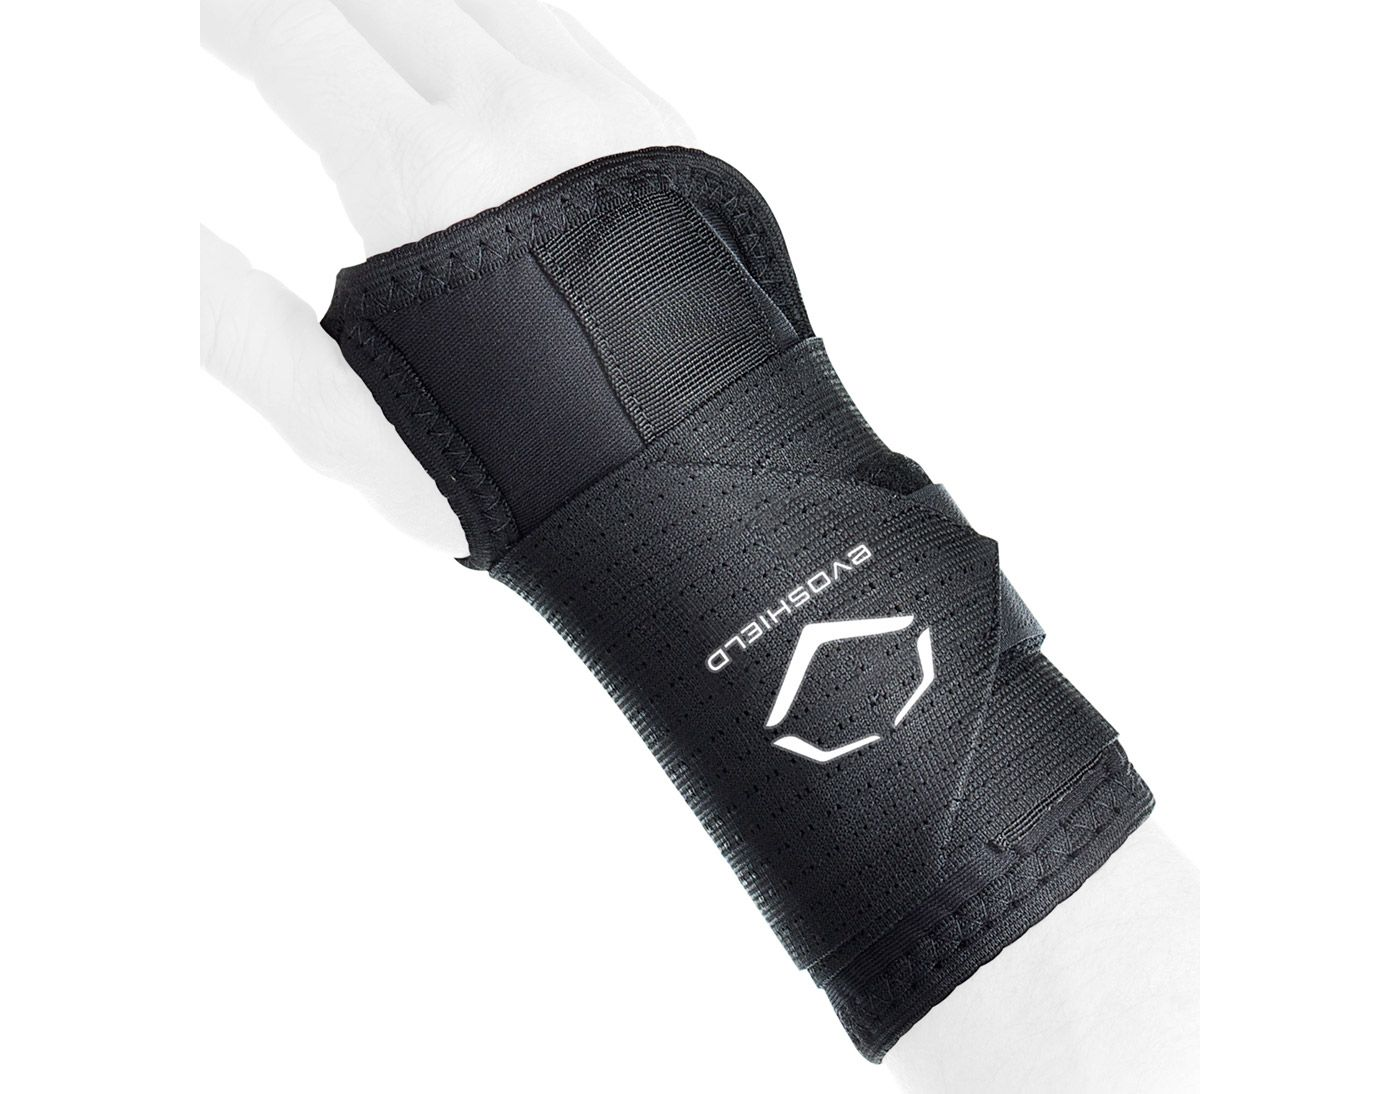 EvoShield Sliding Wrist Guard - Right Hand